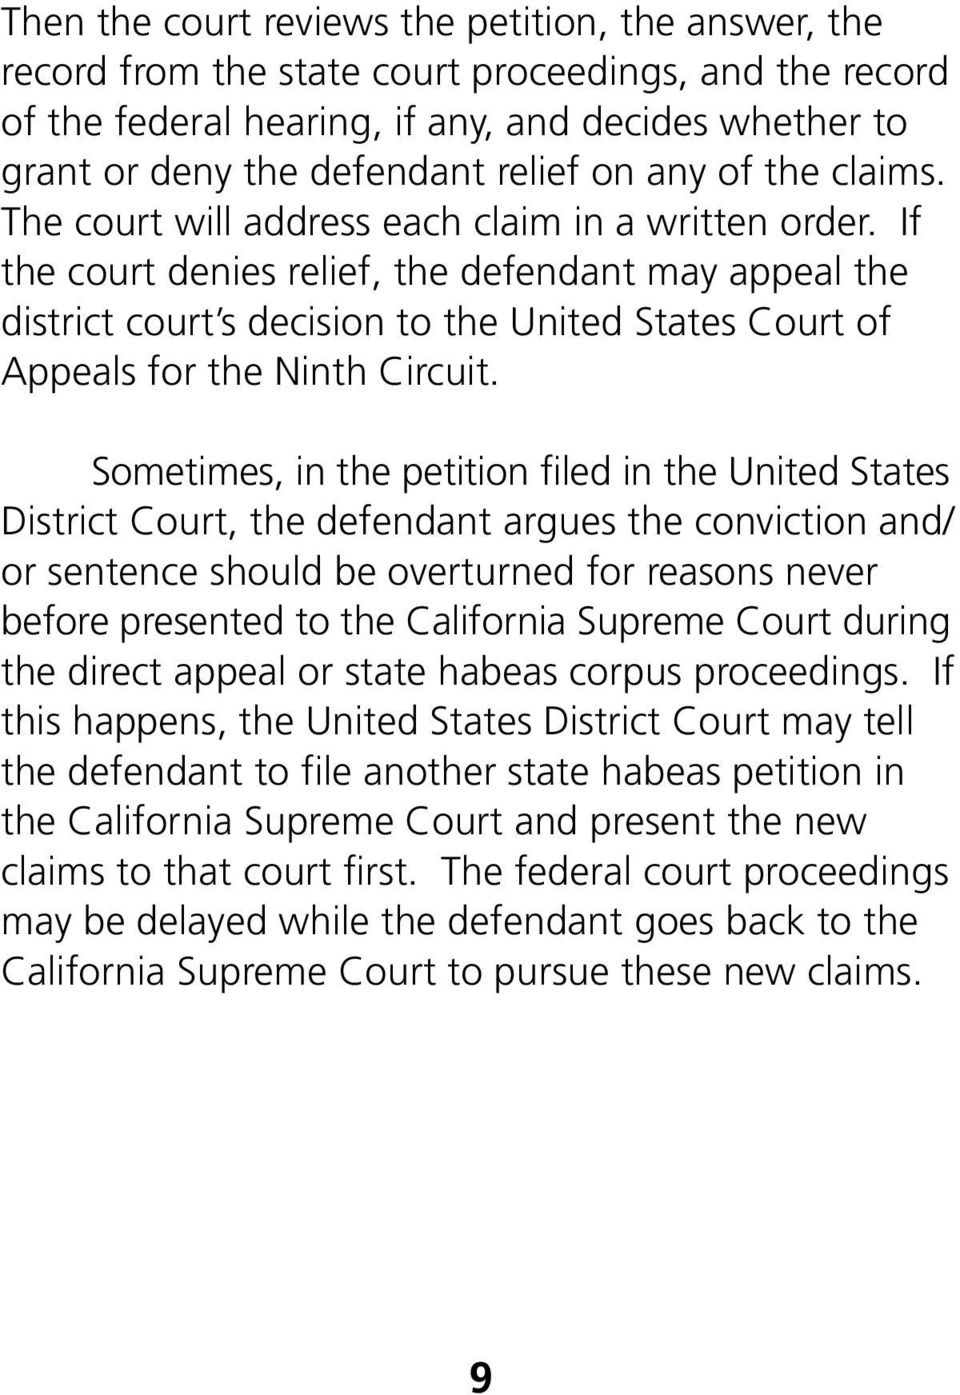 If the court denies relief, the defendant may appeal the district court s decision to the United States Court of Appeals for the Ninth Circuit.